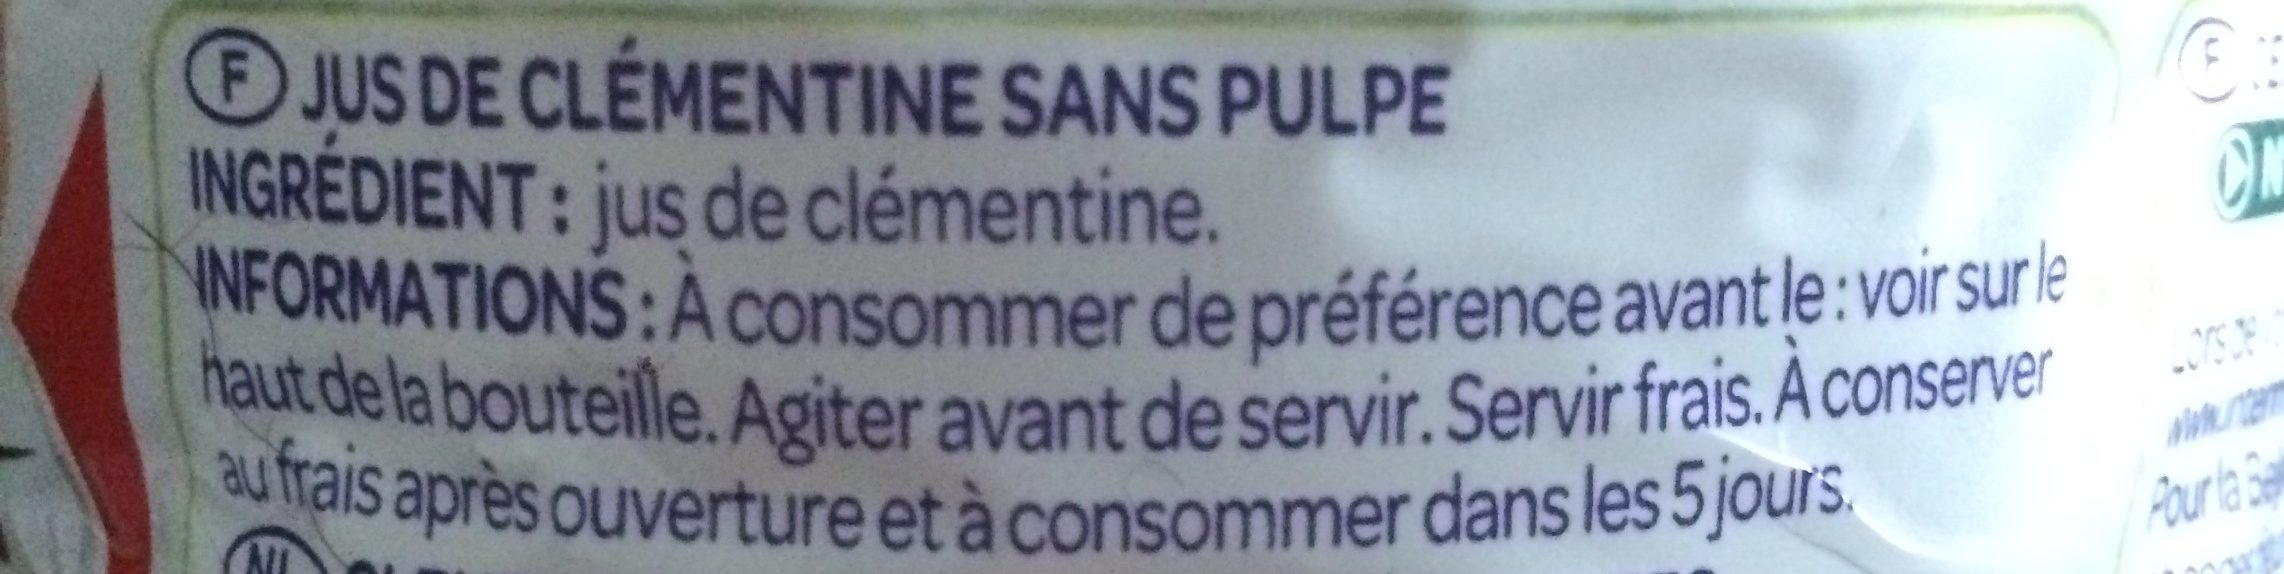 100% Pur jus Clémentine - Ingredients